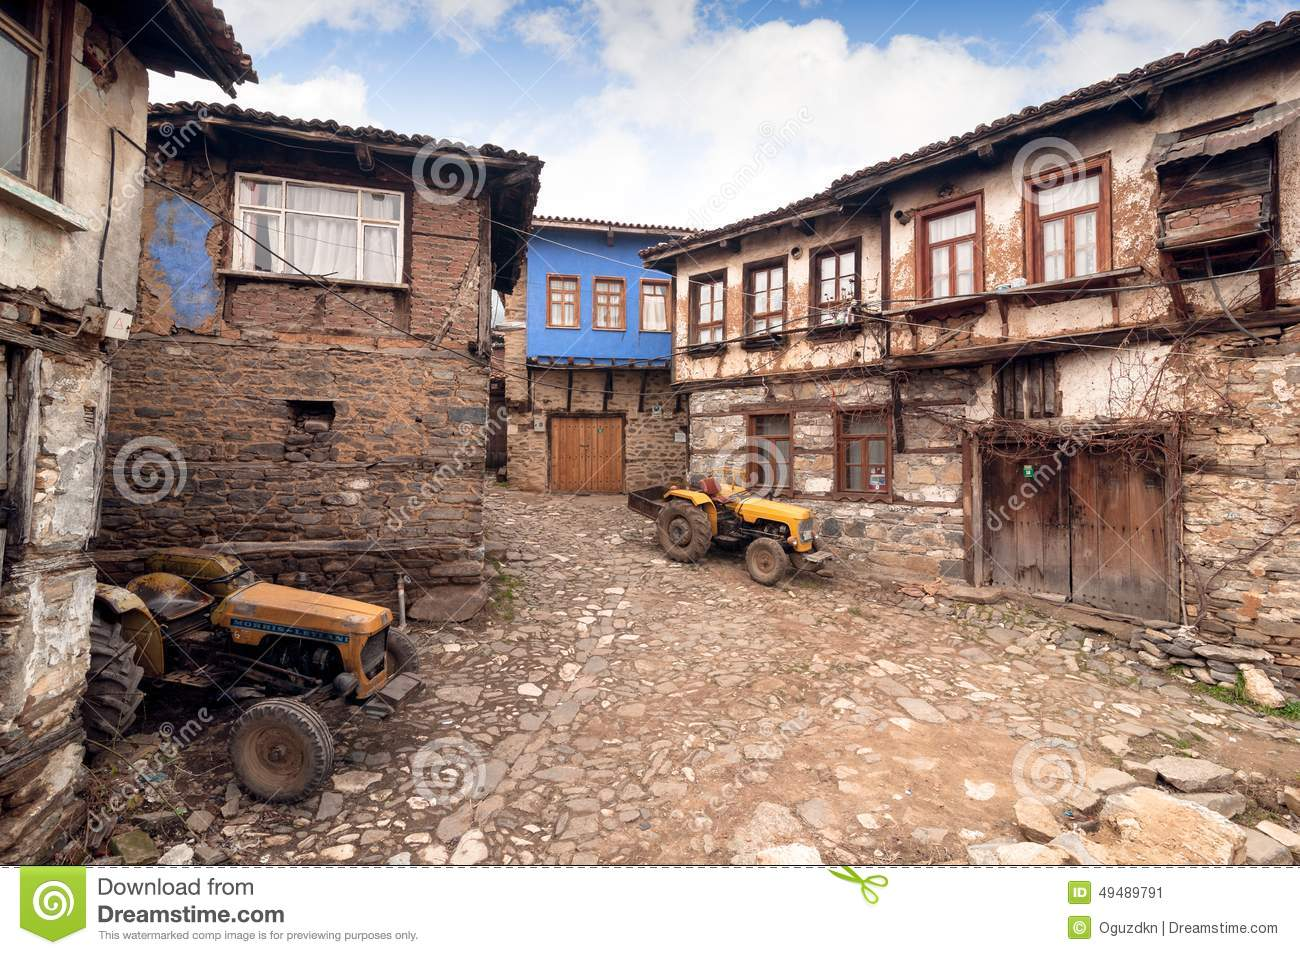 BURSA, TURKEY - JANUARY 26, 2015: a street view of 700 years old Ottoman village. The village accepted as Unesco world heritage.